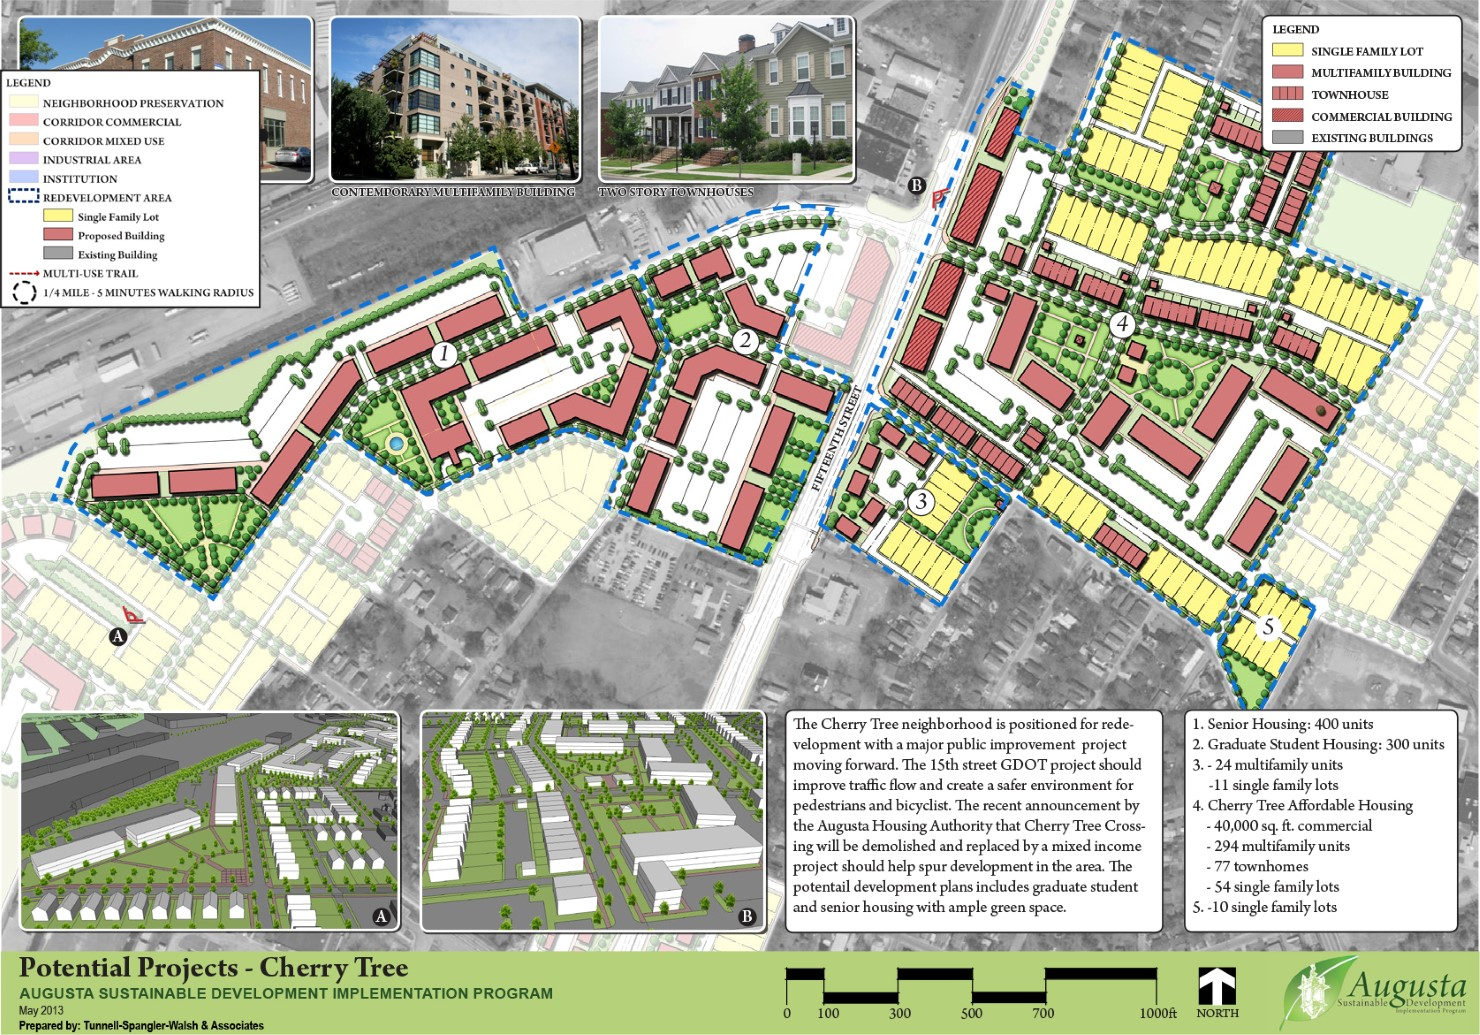 TSW Augusta_2 Augusta Sustainable Development Implementation Program: Cherry Tree Crossing Redevelopment    TSW